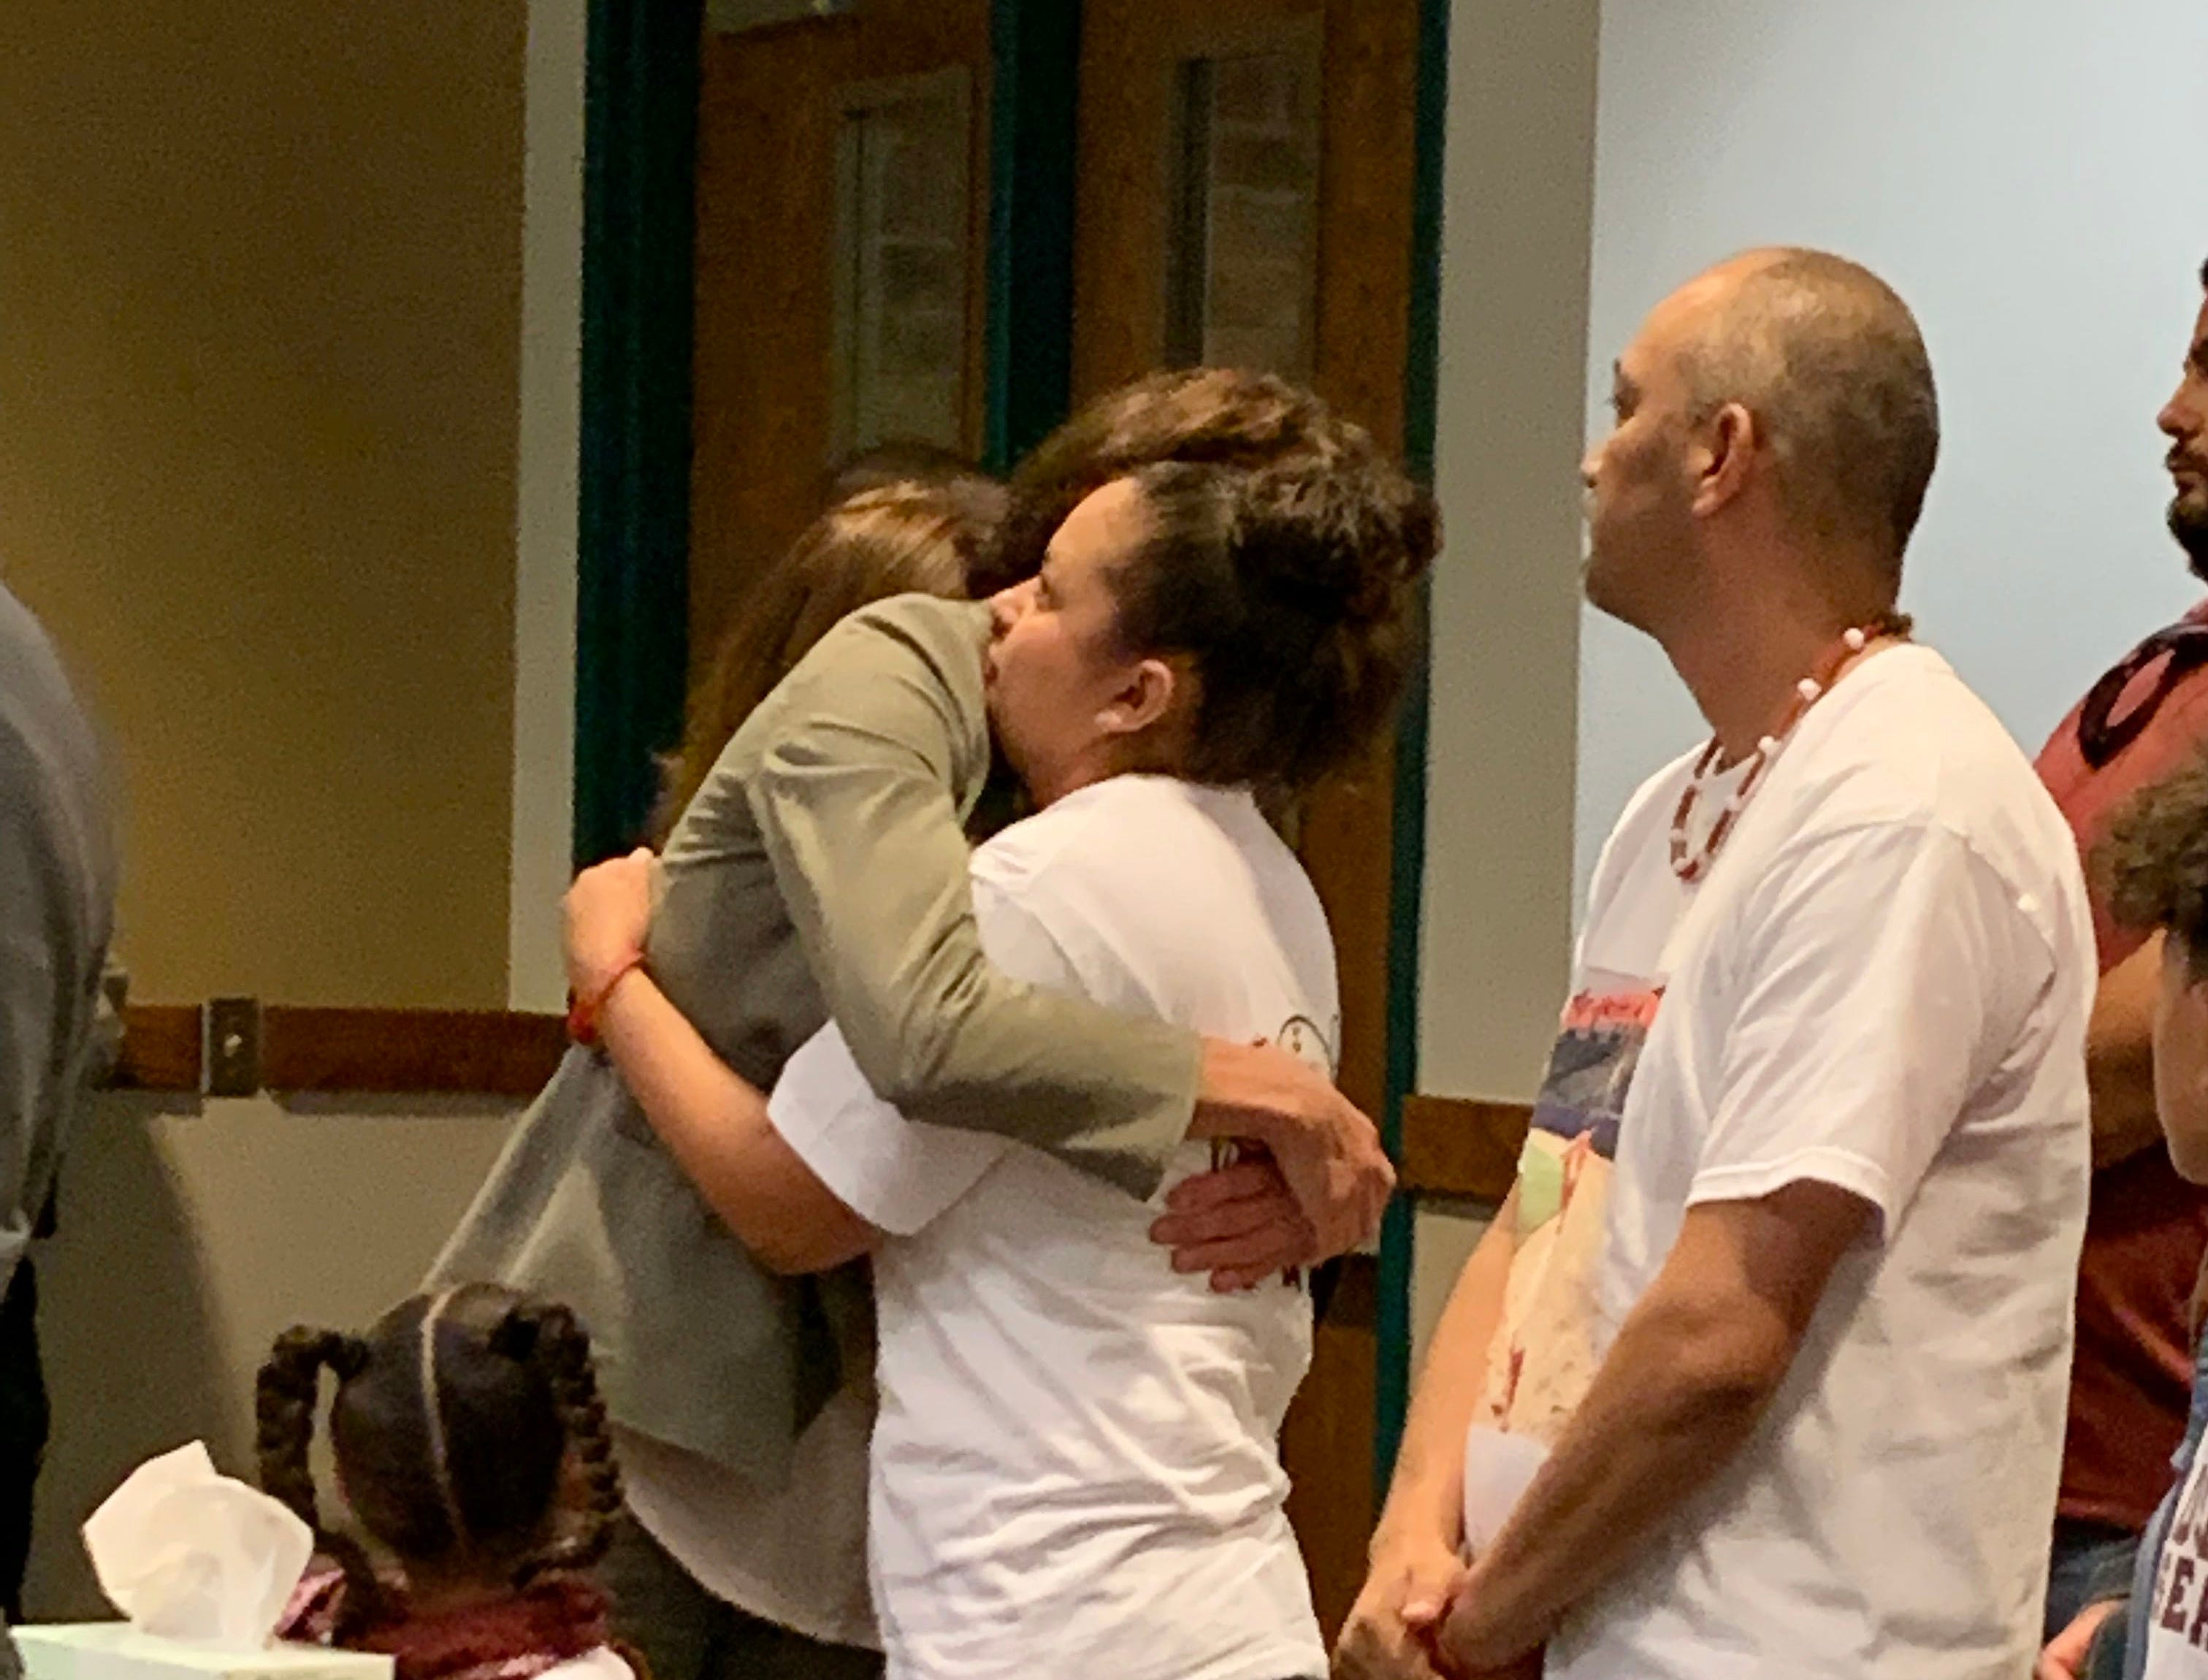 Beto Romero's mother Denise Romero, center, hugs prosecuting attorney Debra Gerard, after an evidentiary hearing Friday May 10, 2019, in 3rd Judicial District Court. Beto Romero Sr. looks on.